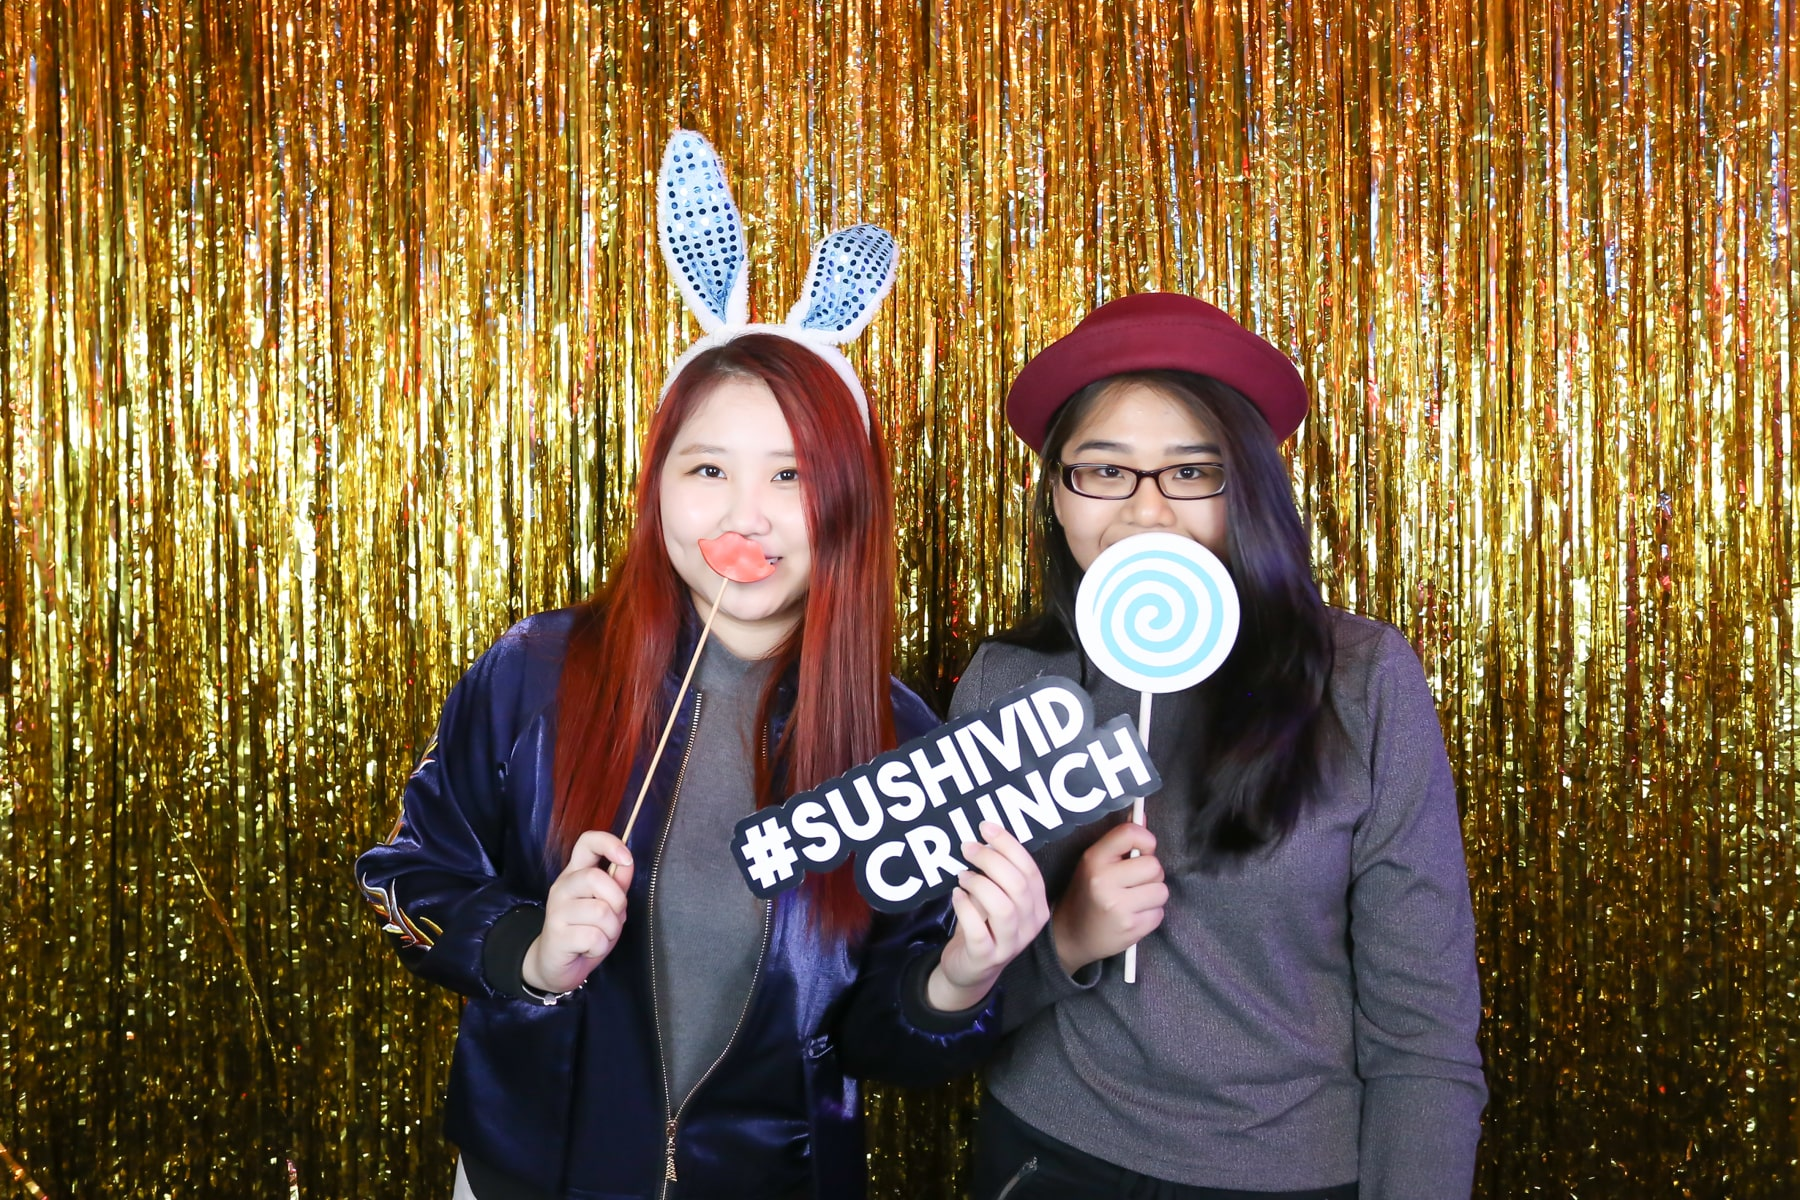 Sushivid+crunch+tagbooth+105